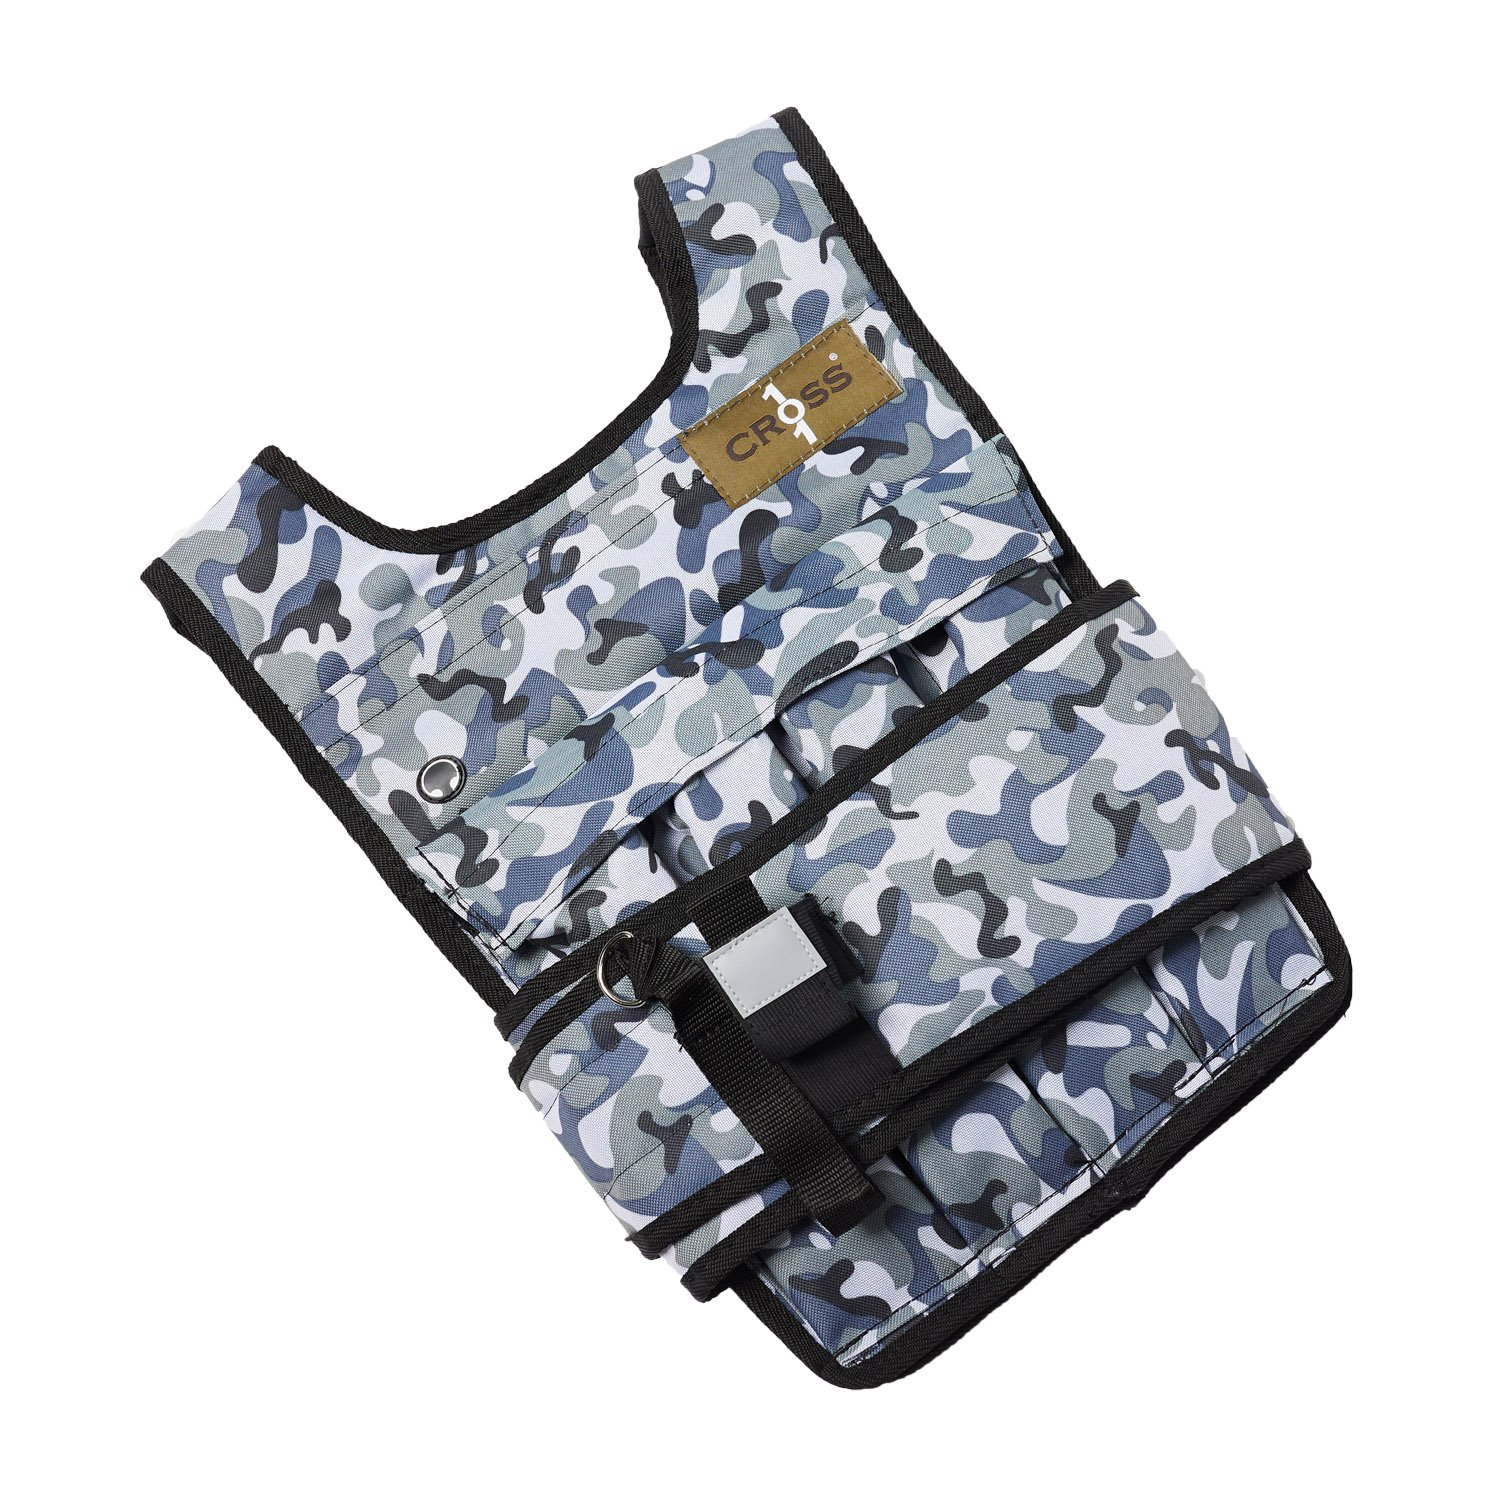 CROSS101 Arctic Camouflage Adjustable Weighted Vest (20lbs)